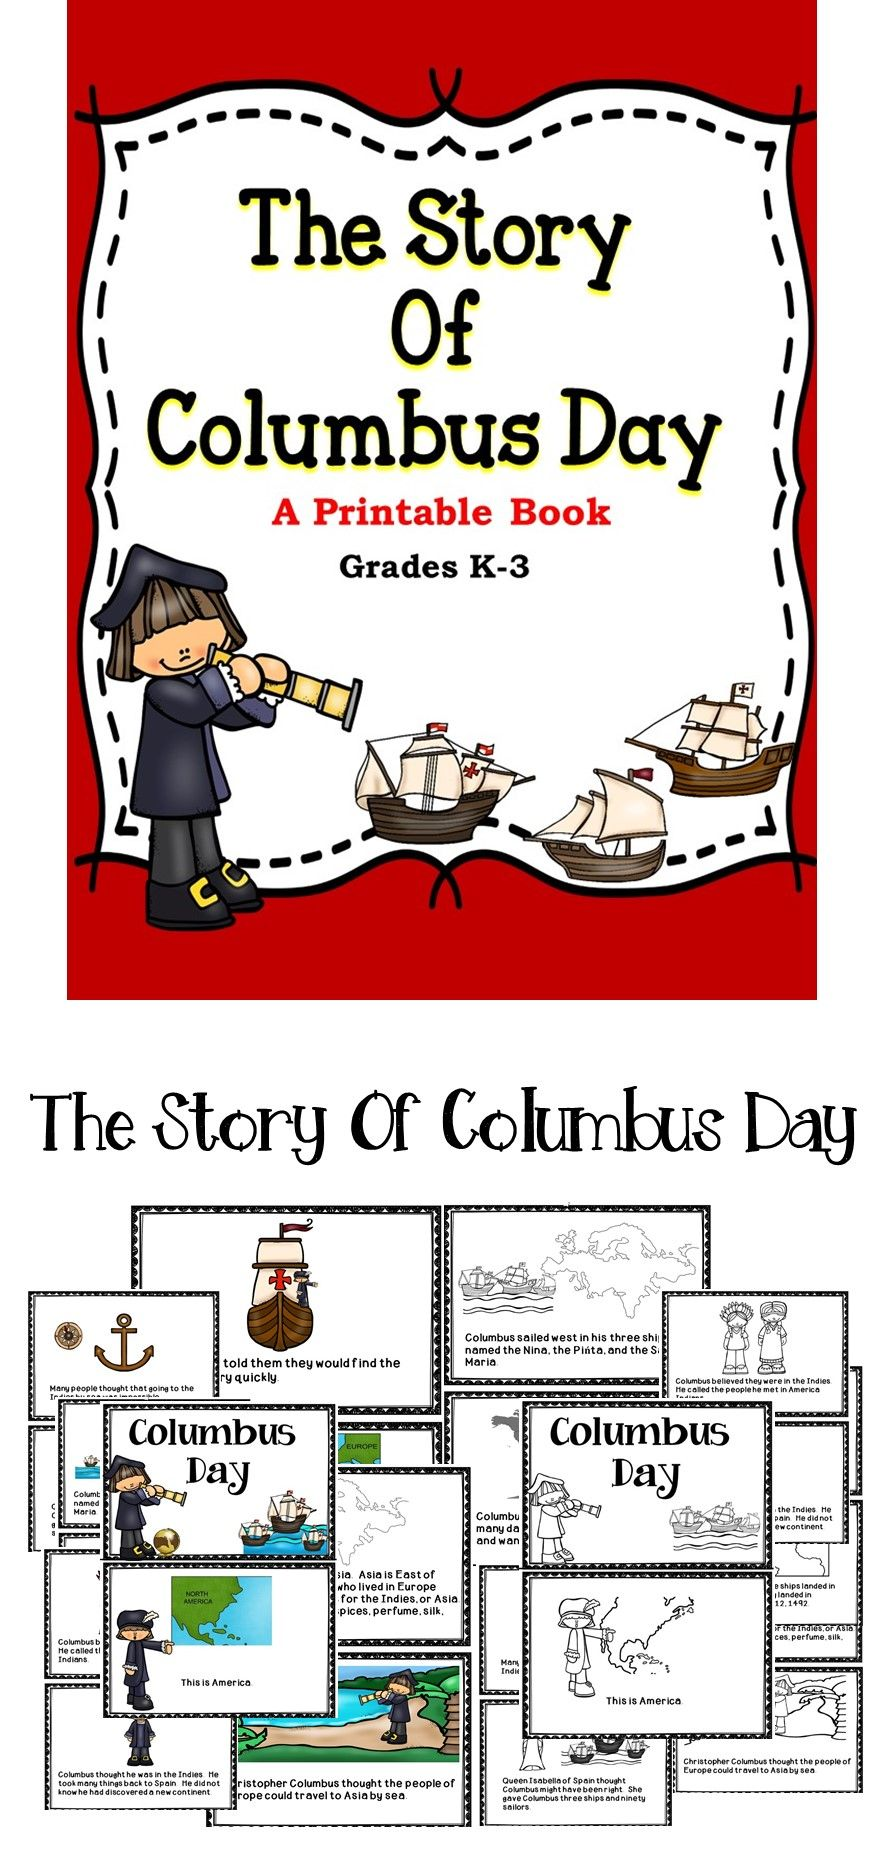 Columbus Day Printable Books Education Quotes For Teachers Elementary Books